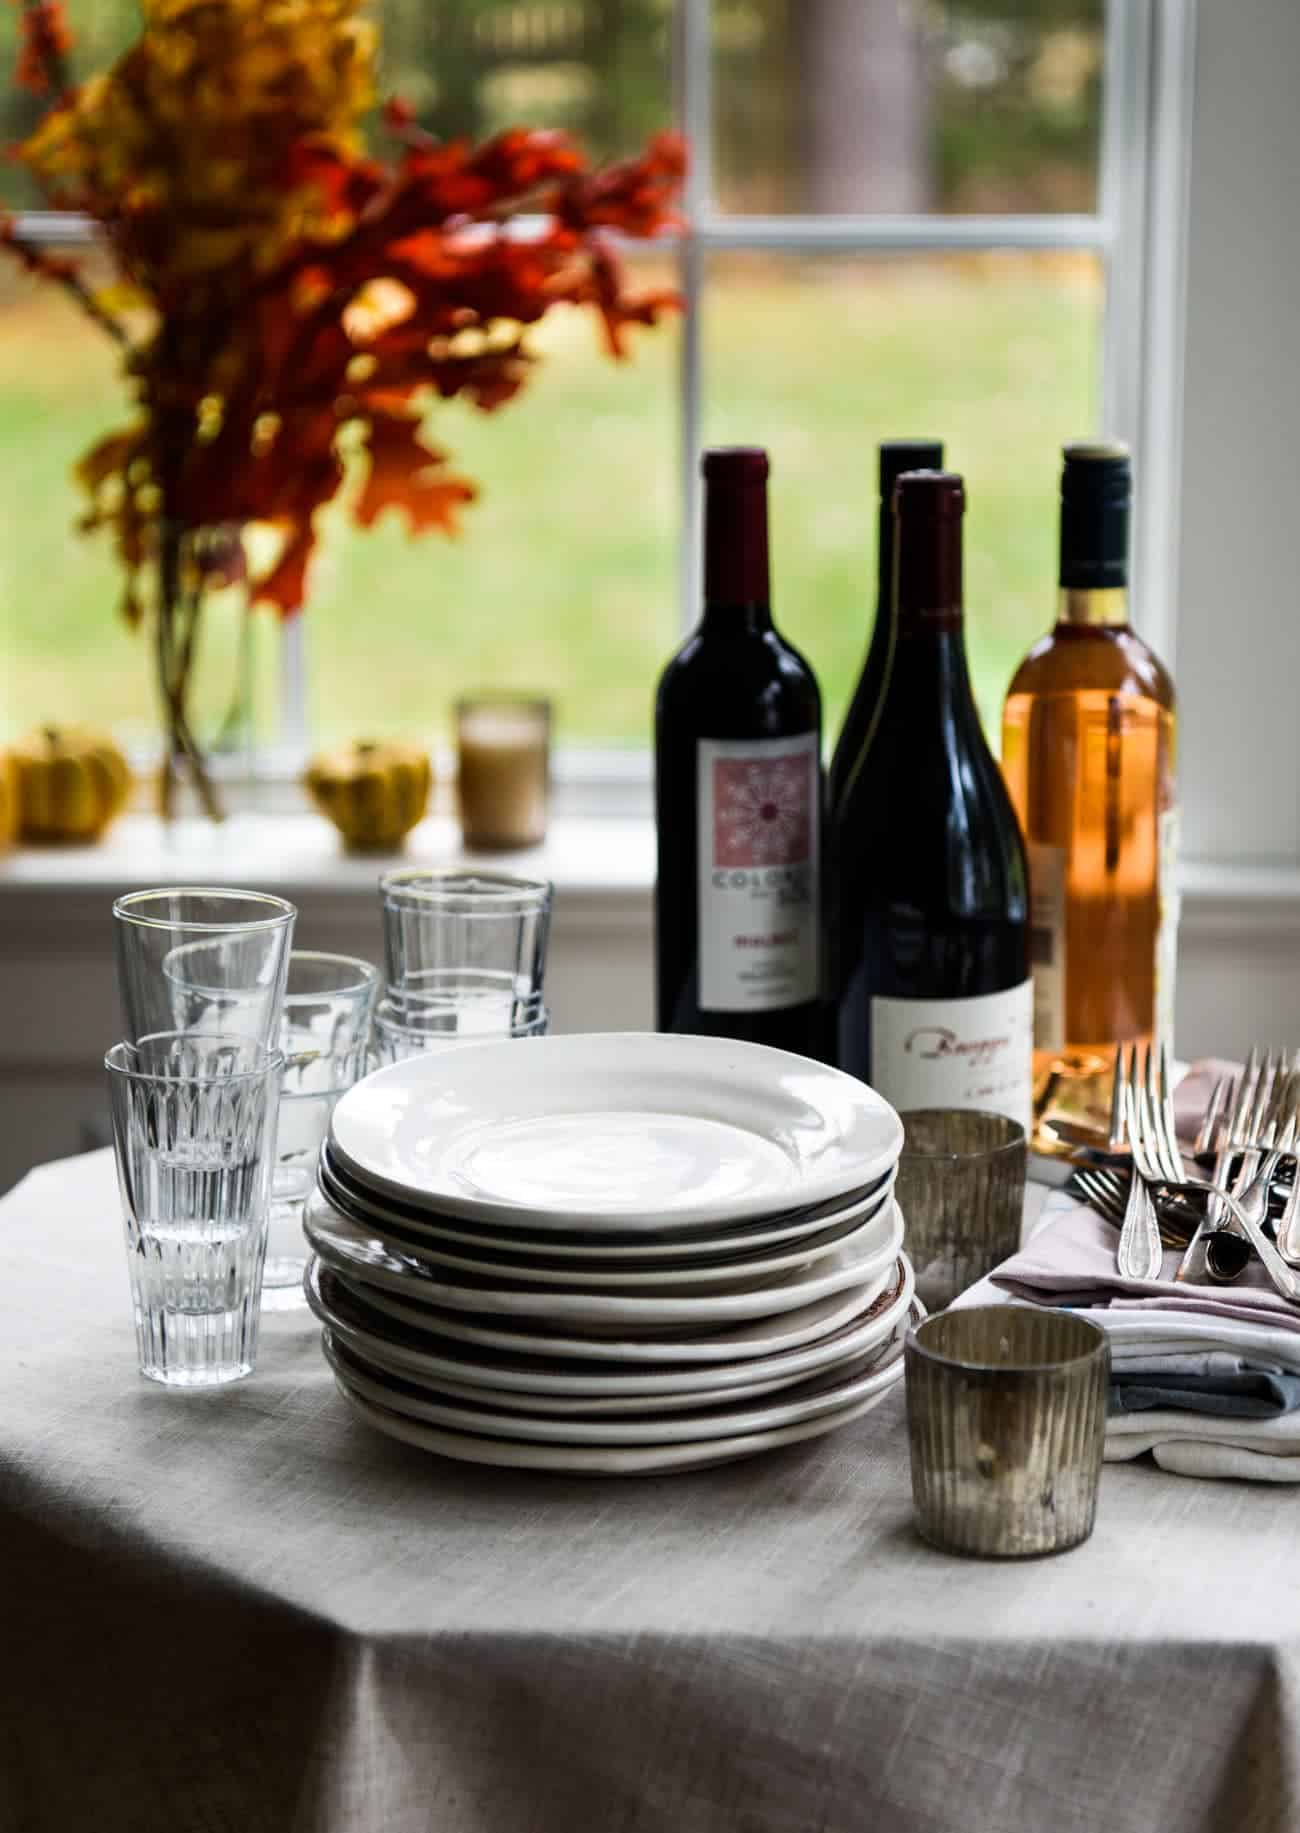 Stack of white dinner plates, bottles of wine, and glasses - Friendsgiving tips